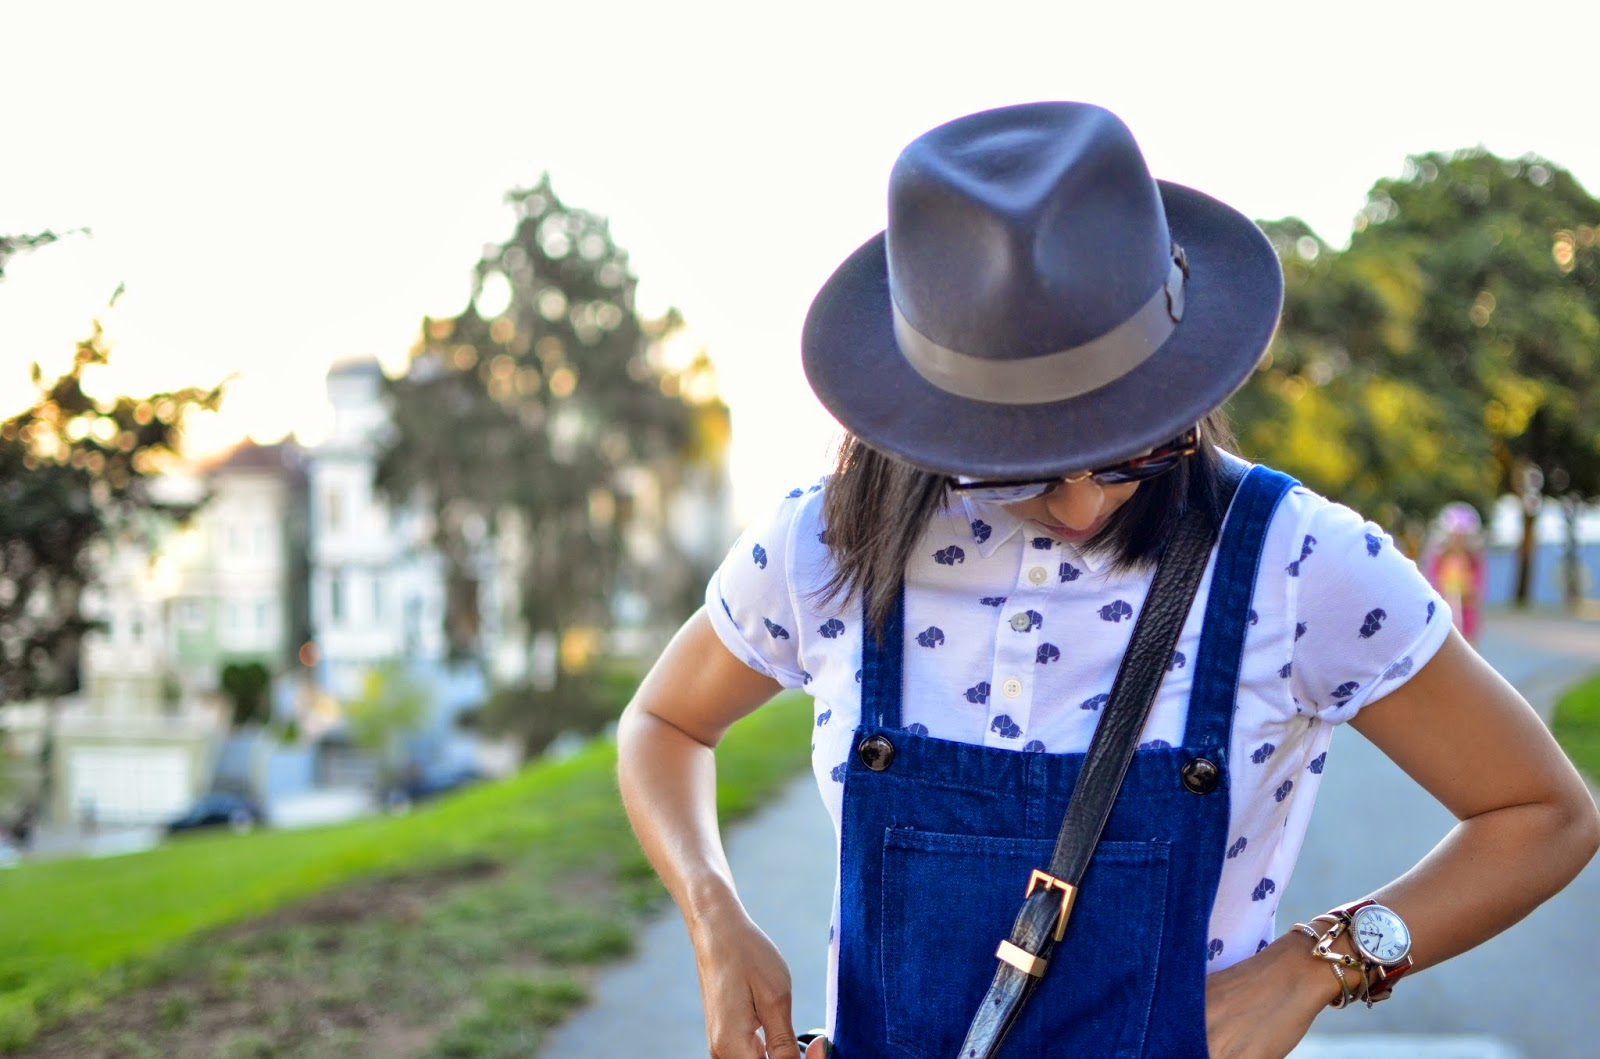 how to wear skirt overalls, zara skirt overalls, Fabros cross body bag, Goorin Bros.grey fedora, Goorin Bros. Doctor hat, elephant print polo, SF, Alamo square park